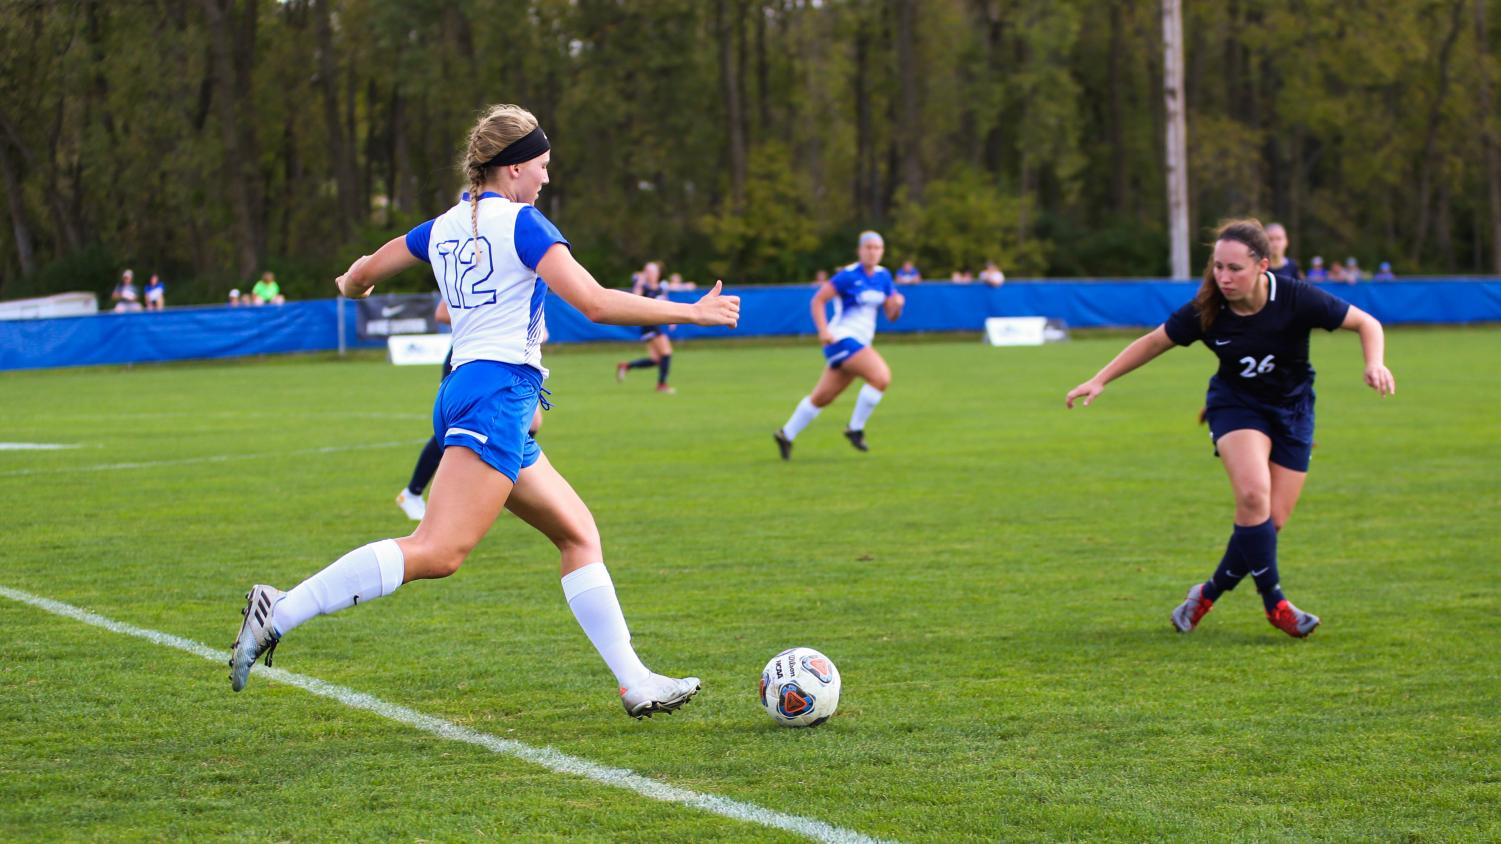 Marta Springer ('19) drives the ball against Wheaton College on Sept. 15. Luther lost 1-0, repeating the game they had against Wheaton in the 2017-18 season.